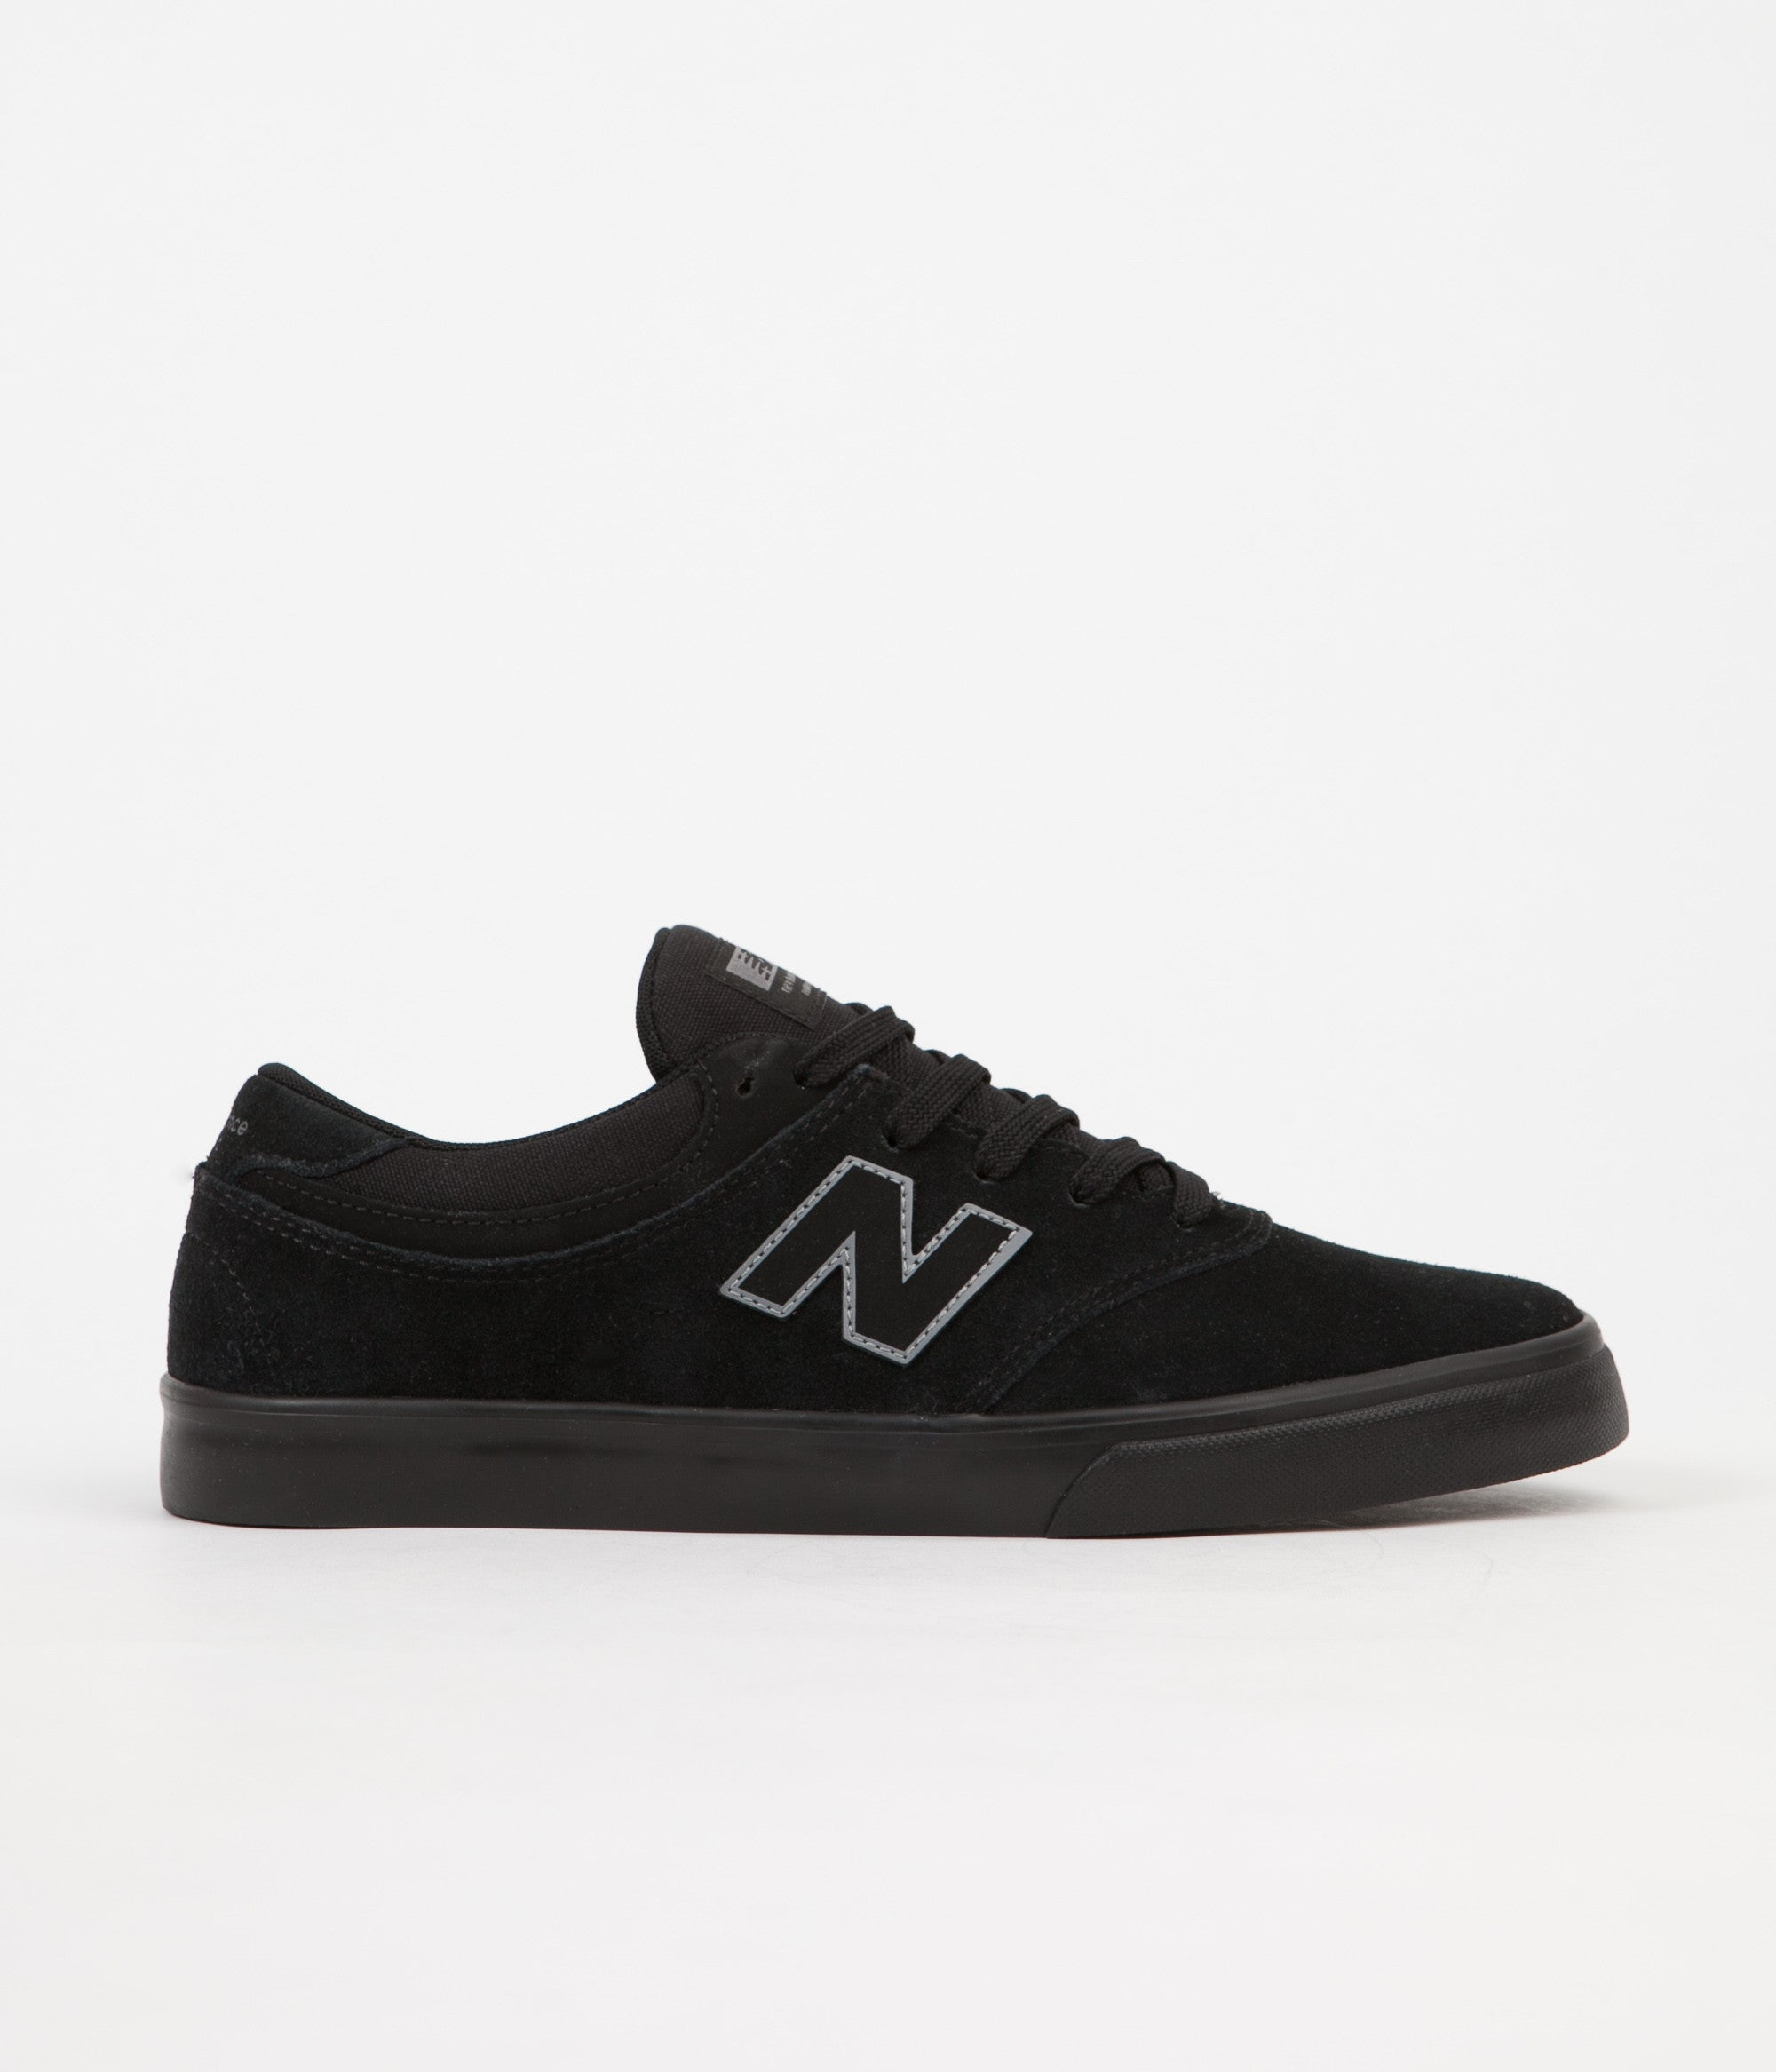 new balance quincy 254. new balance quincy 254 shoes - black /